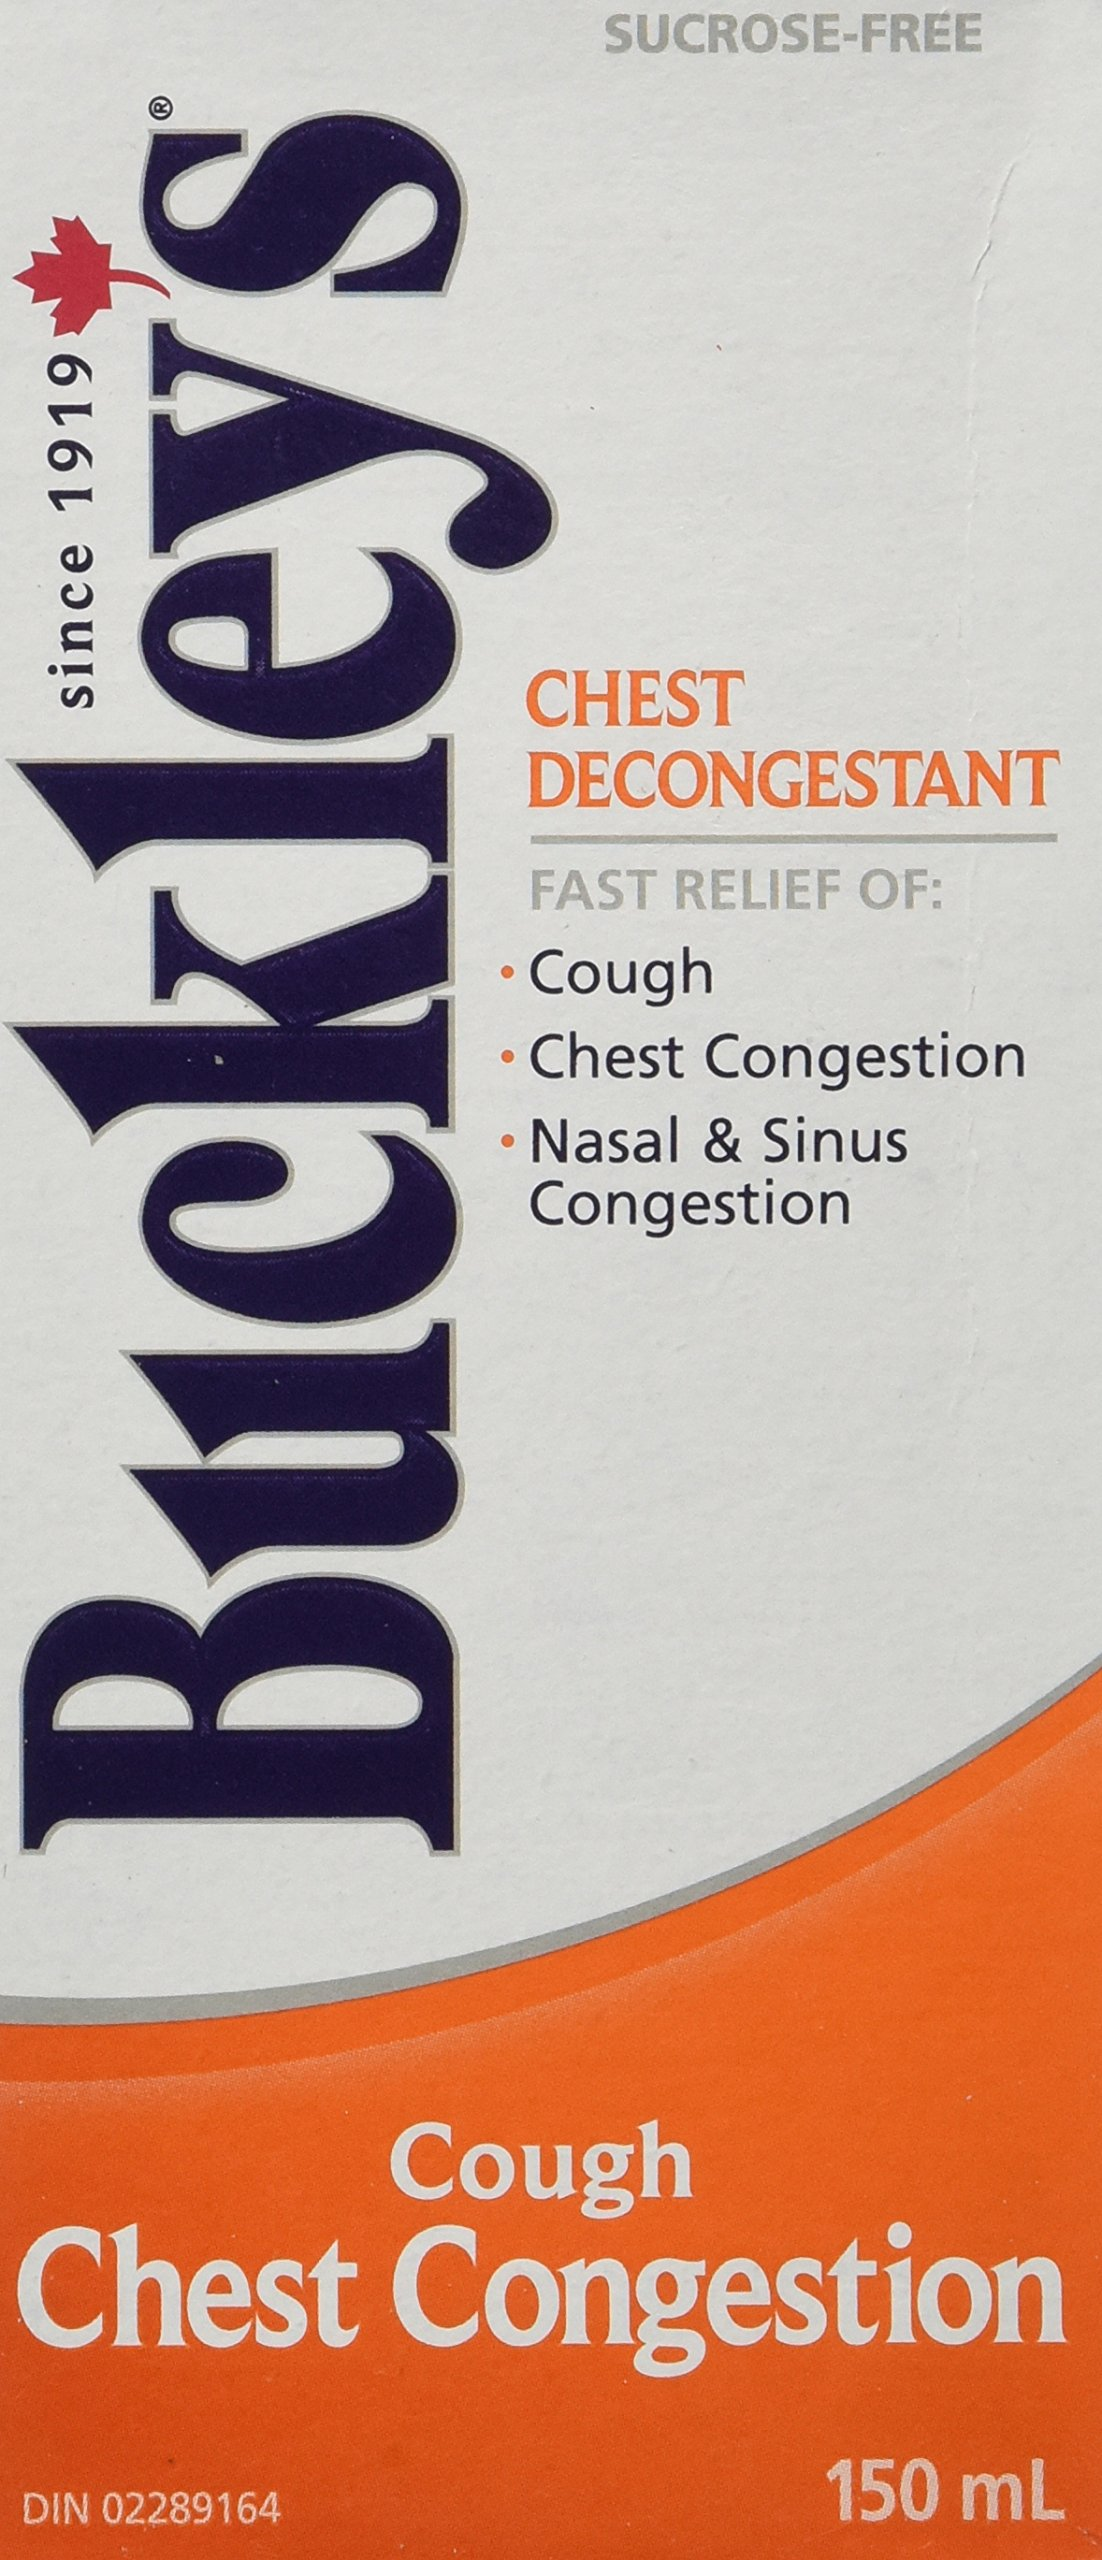 BUCKLEY'S Original 'CHEST DECONGESTANT' Syrup for